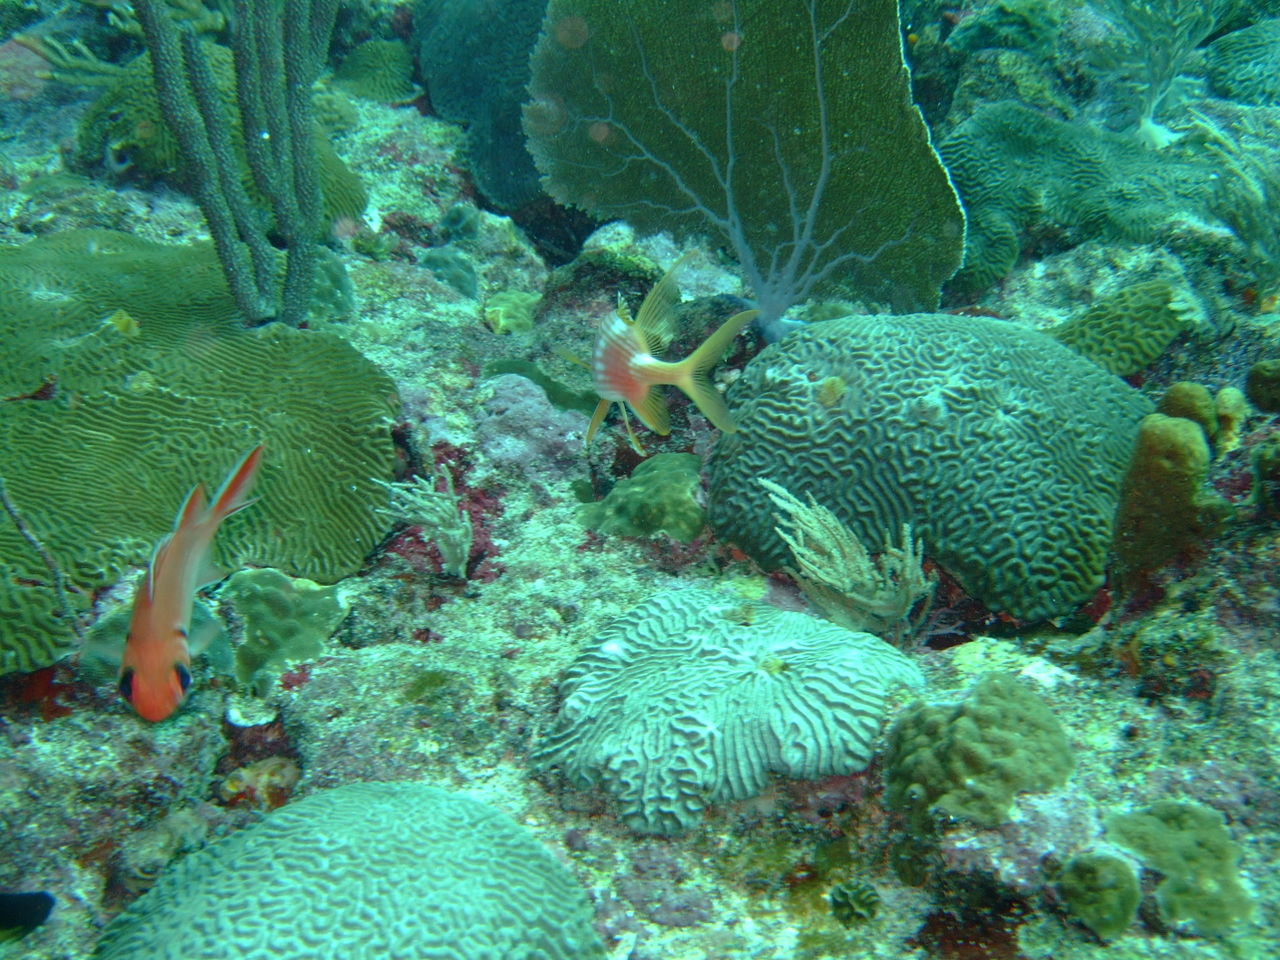 Clumps of healthy hard coral living on the old dead coral substrate